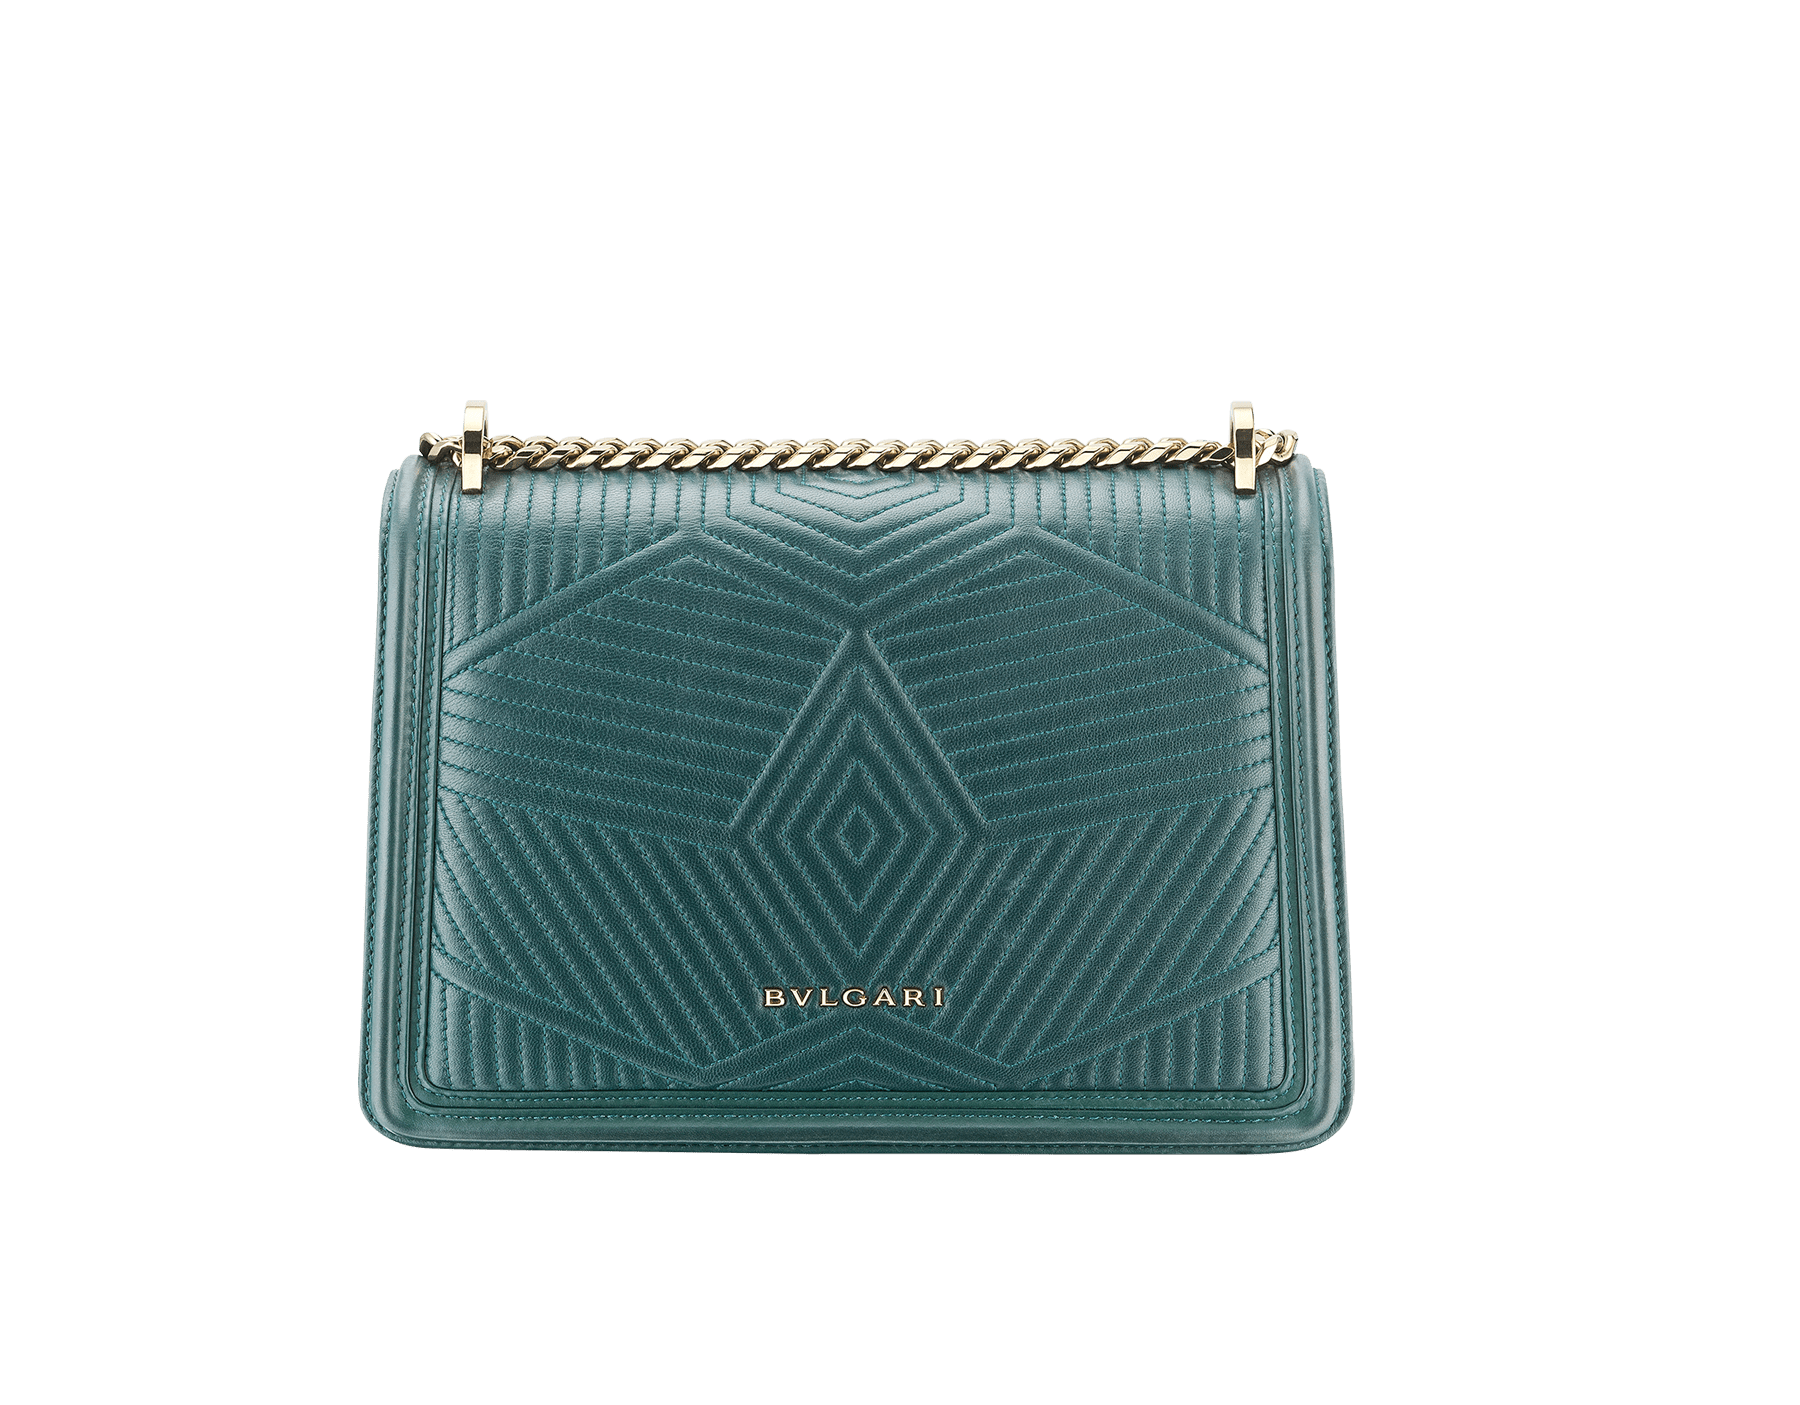 Serpenti Diamond Blast shoulder bag in forest emerald quilted nappa leather body and forest emerald calf leather frames. Snakehead closure in light gold plated brass decorated with forest emerald and black enamel, and black onyx eyes. 287850 image 3